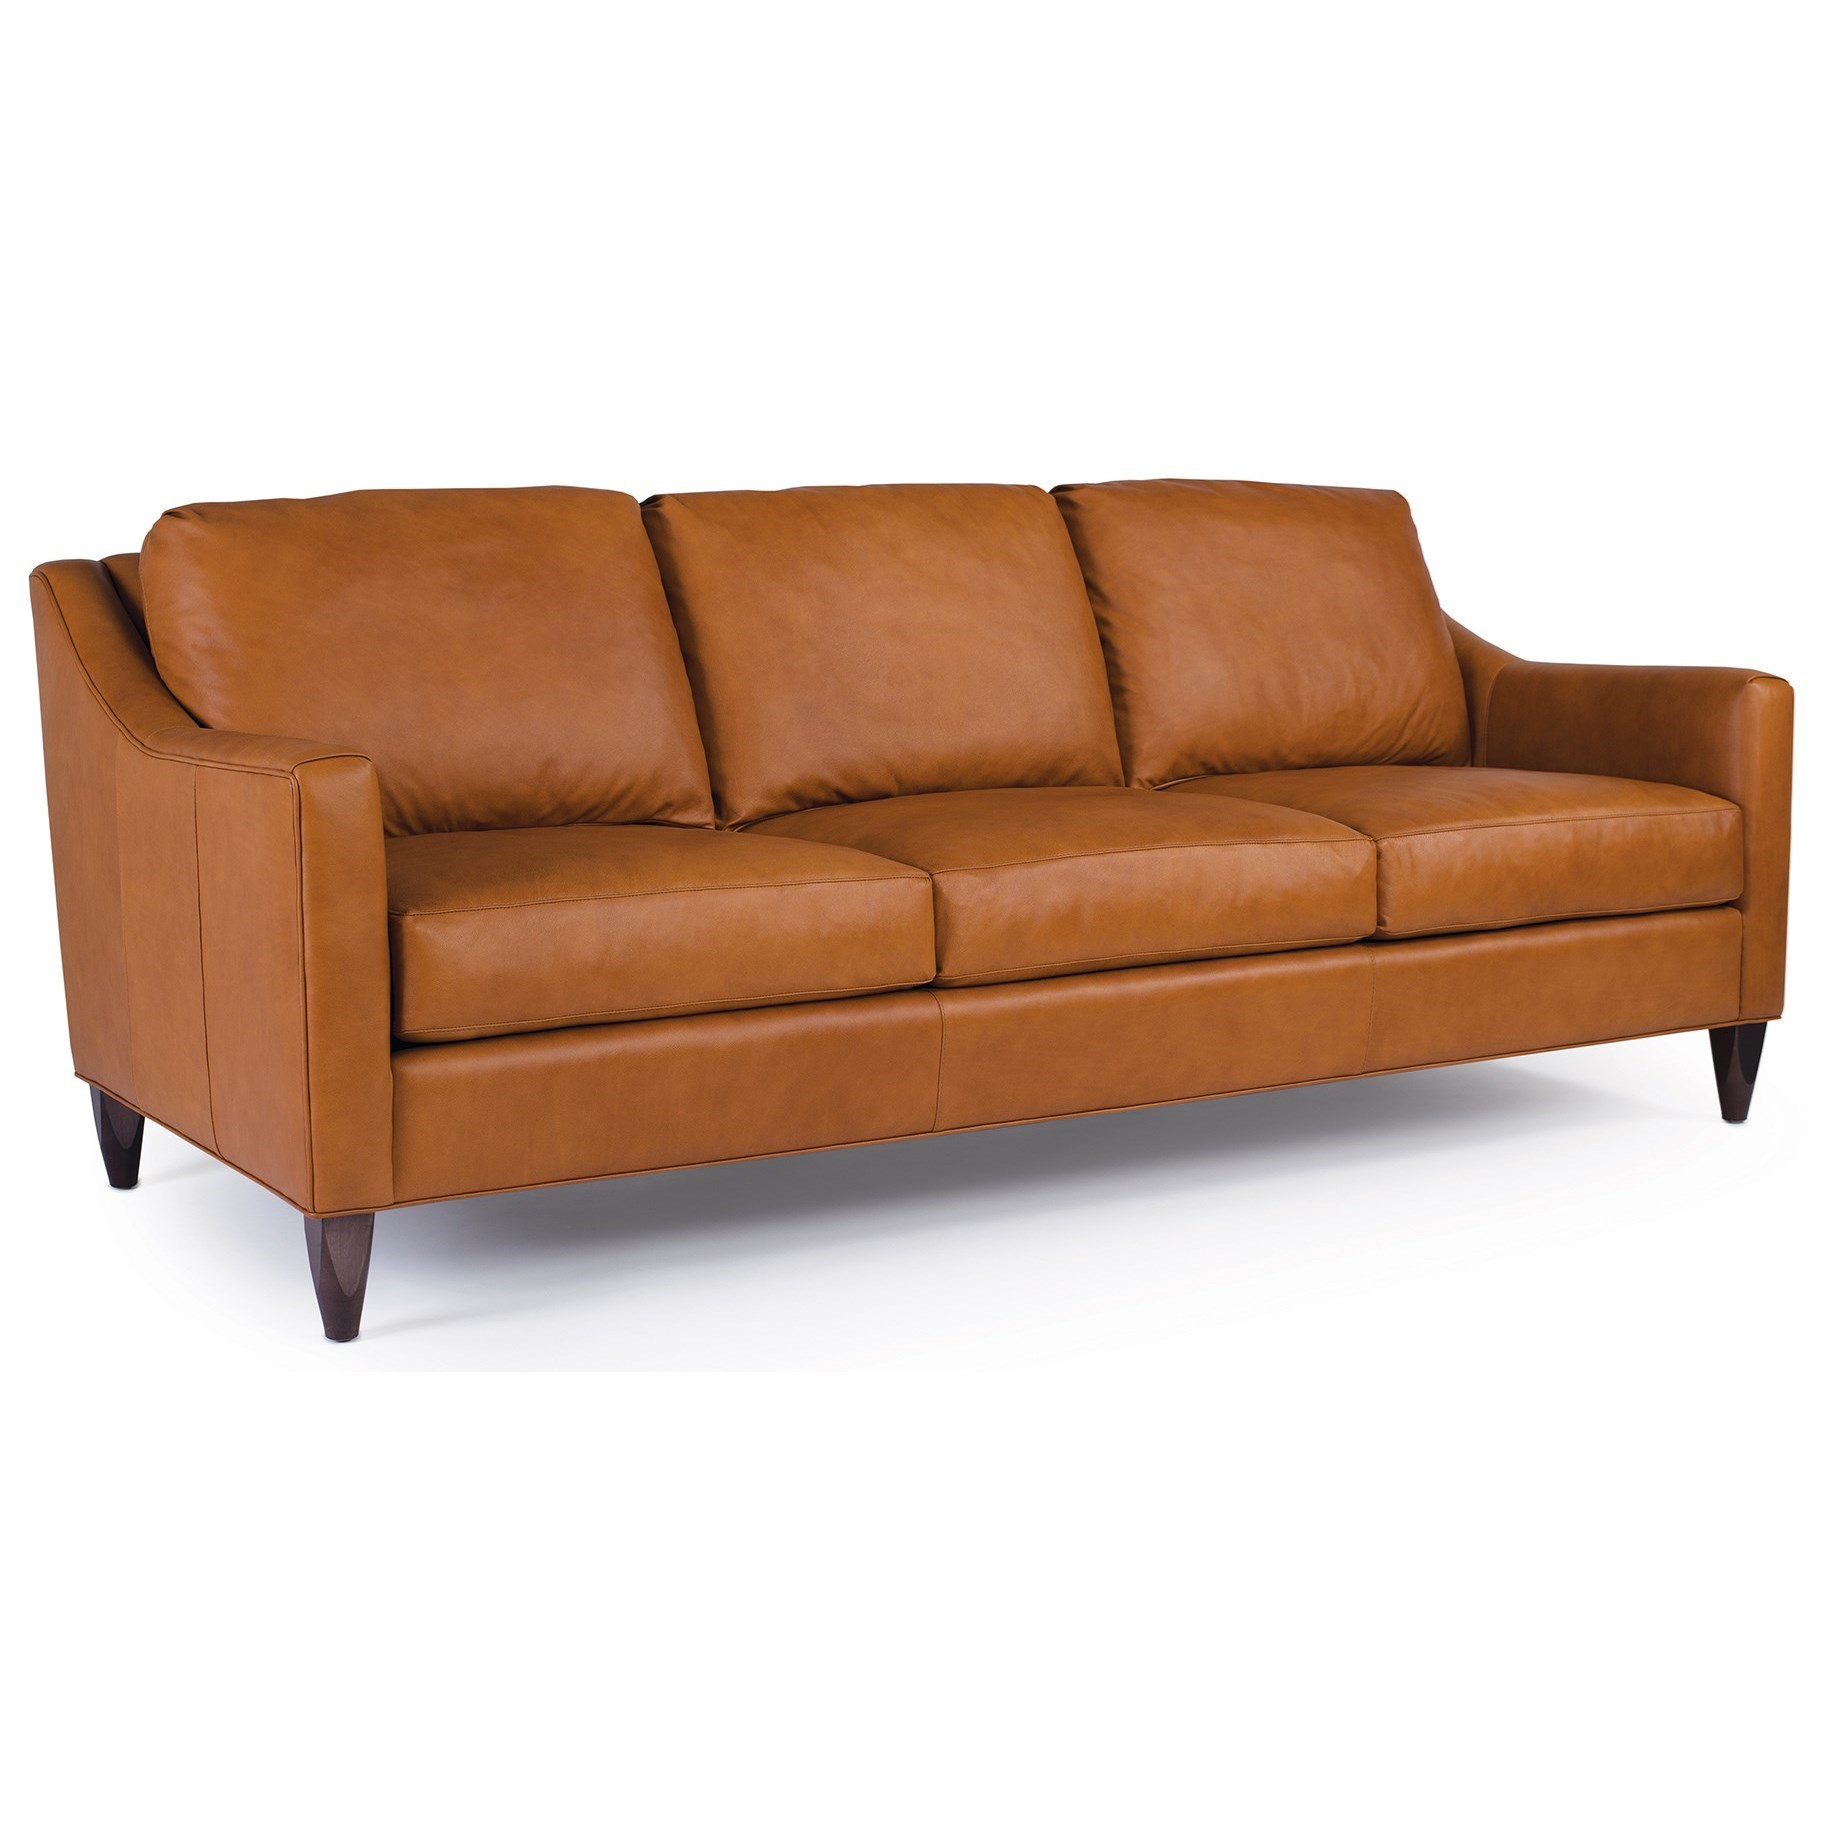 261 Sofa by Smith Brothers at Rooms for Less